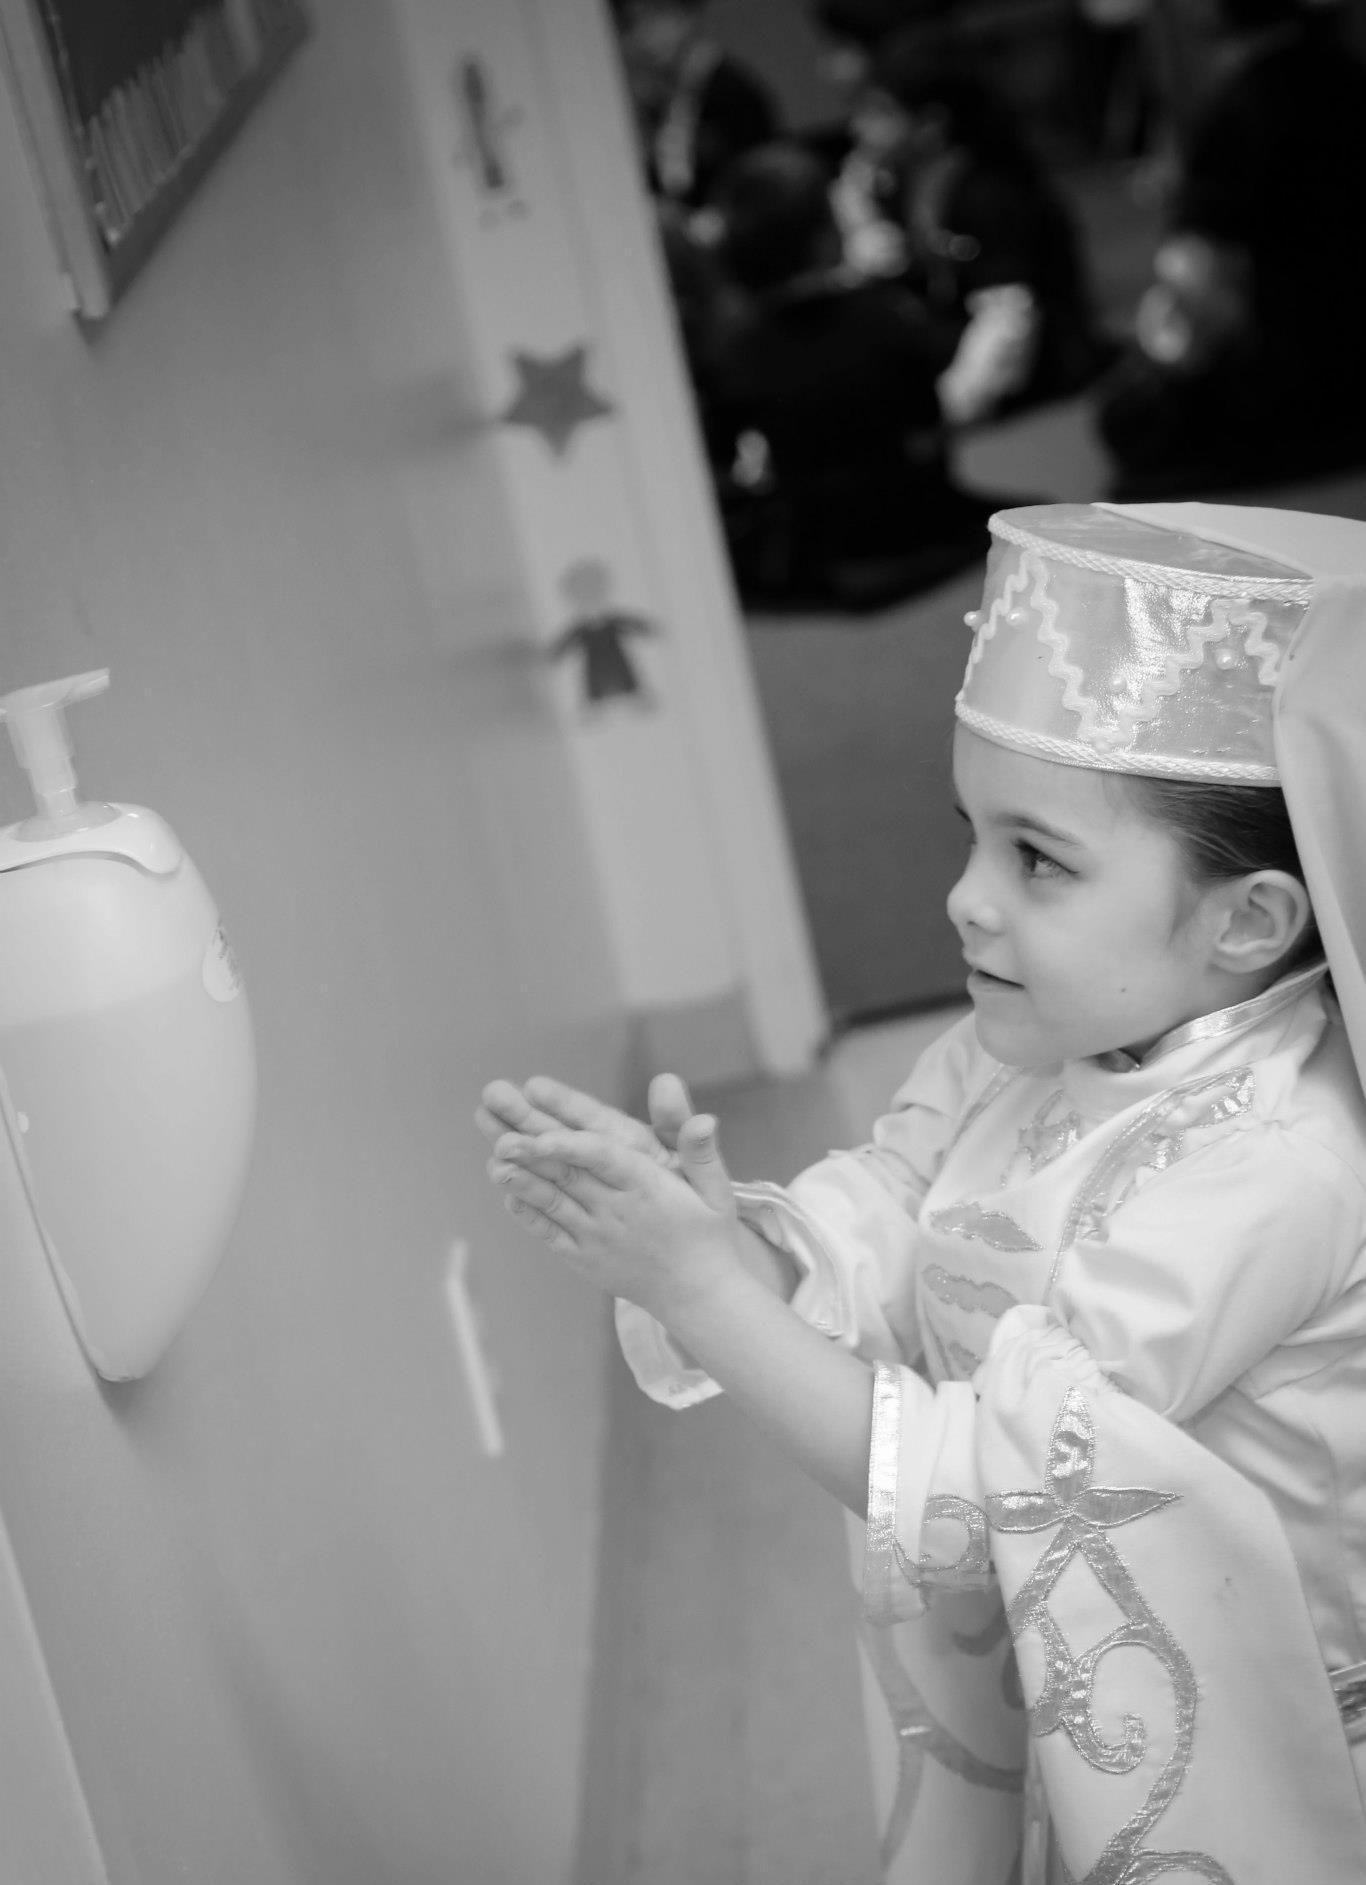 Circassian Child Washing Her Hands Hand Sanitizer Hygiene